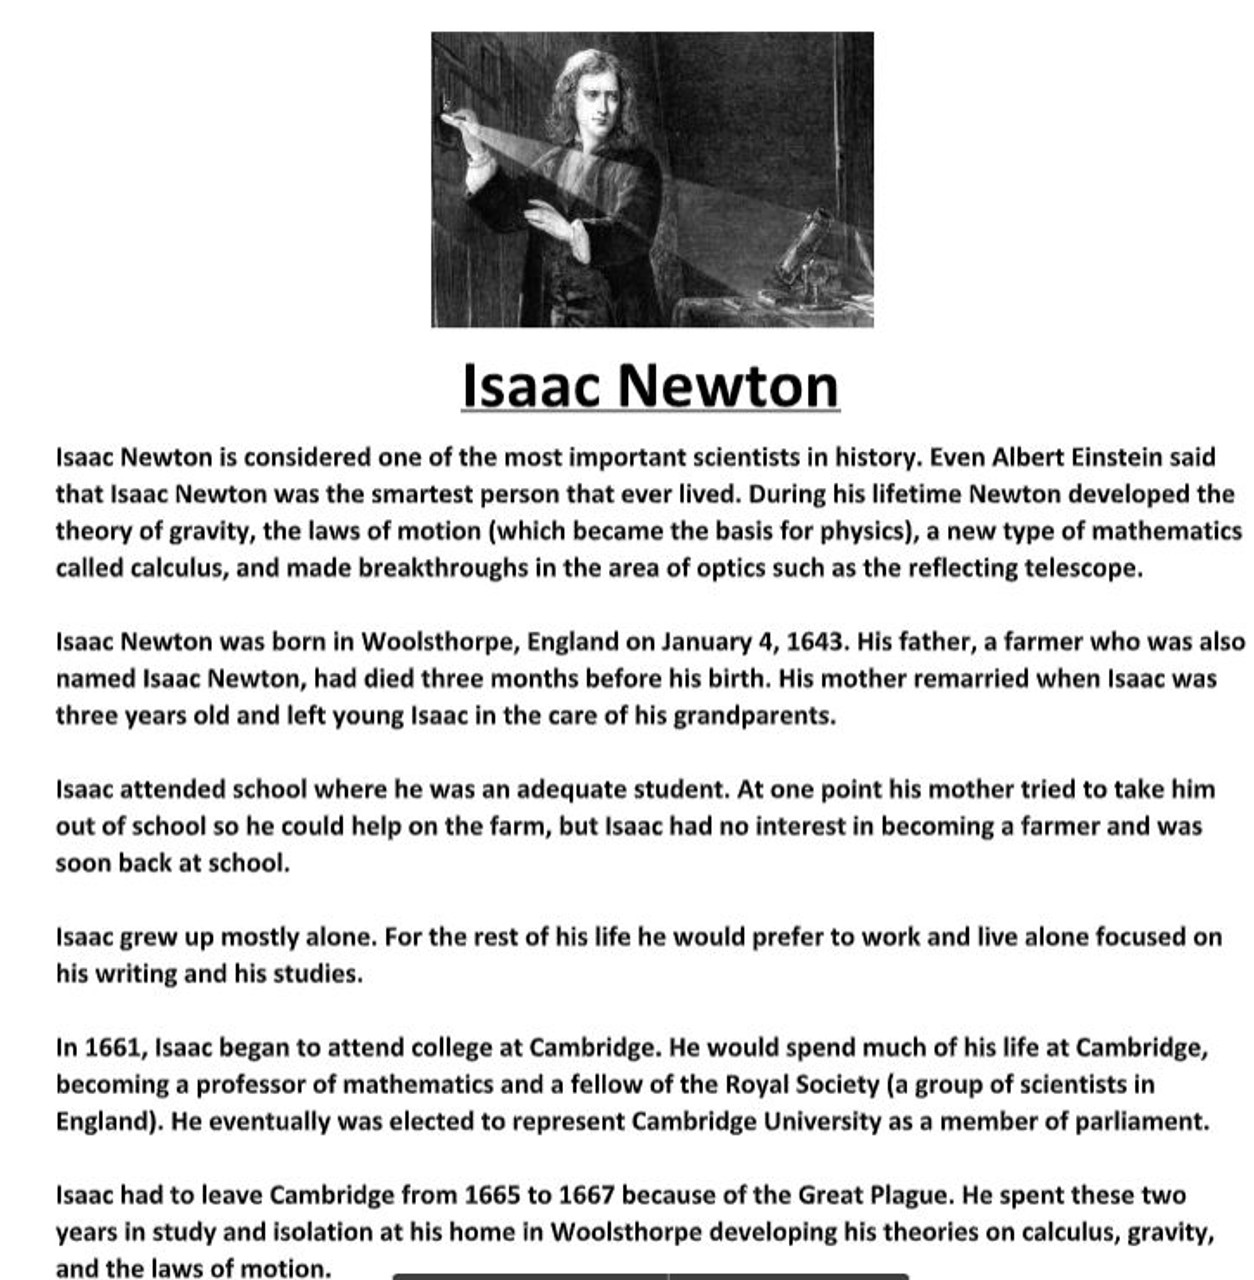 medium resolution of Isaac Newton Biography Worksheet - Amped Up Learning